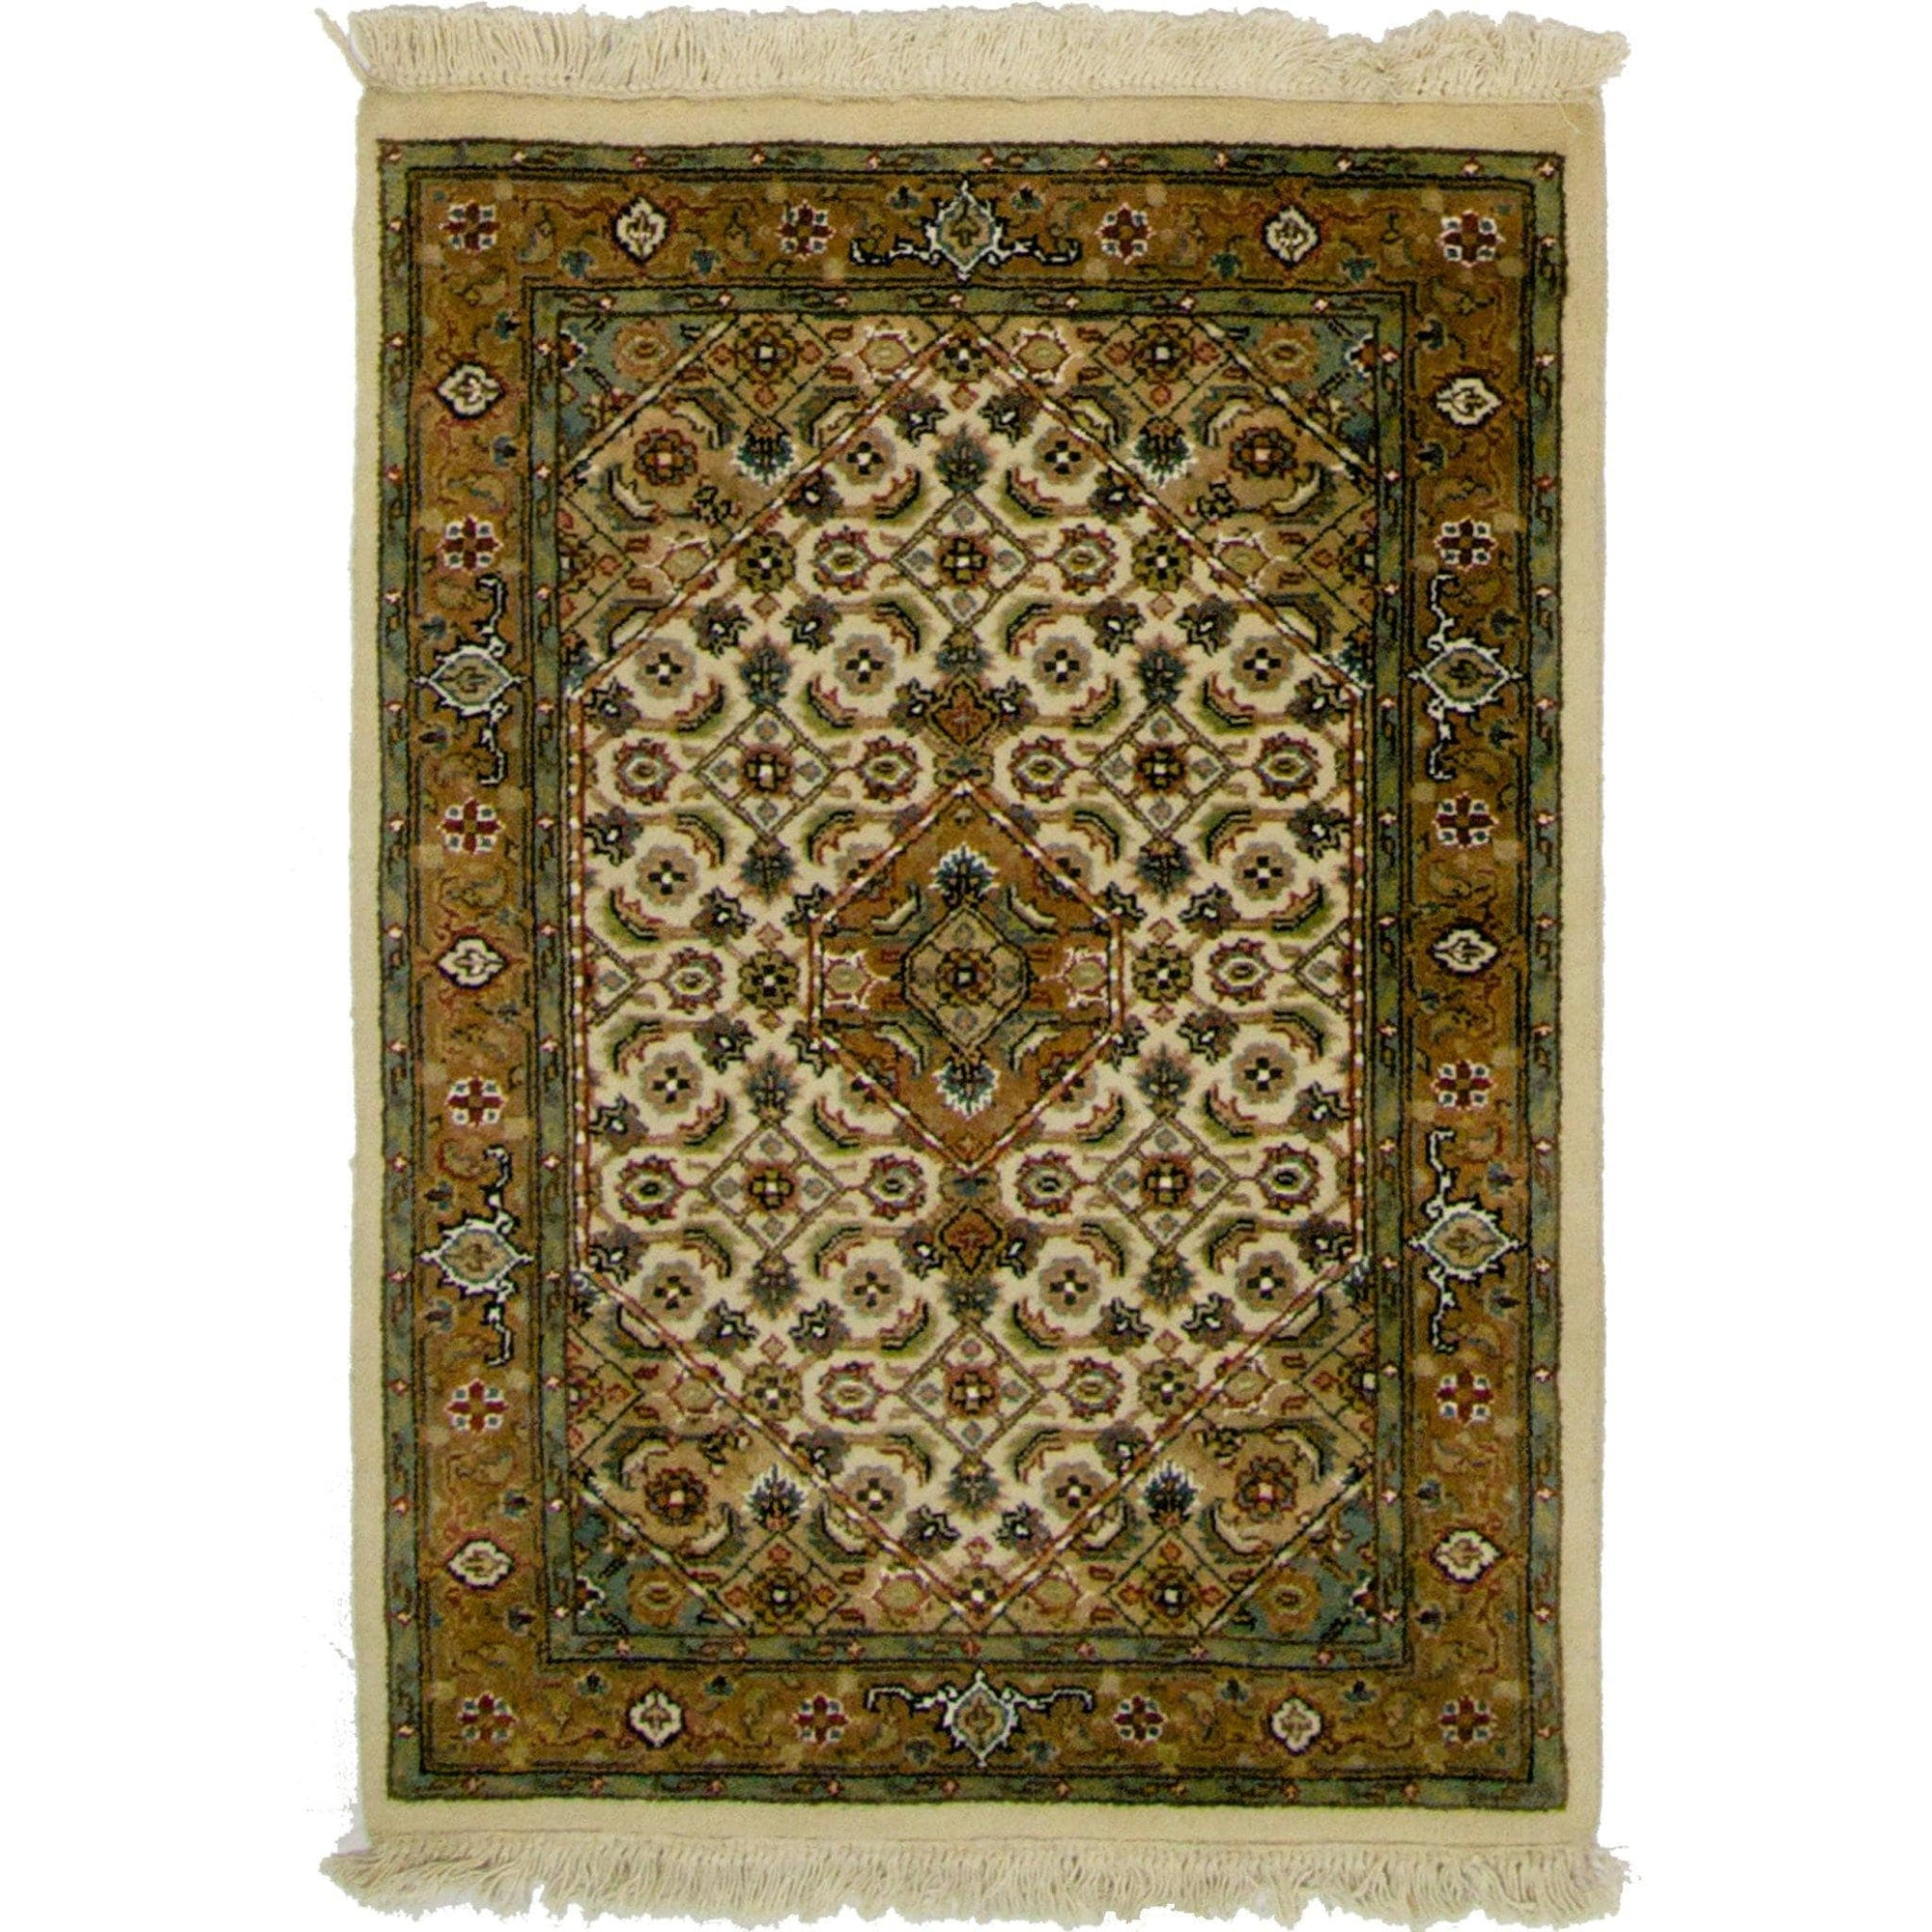 Fine Hand-knotted Wool Bijar Rug 61cm x 90cm Persian-Rug | House-of-Haghi | NewMarket | Auckland | NZ | Handmade Persian Rugs | Hand Knotted Persian Rugs